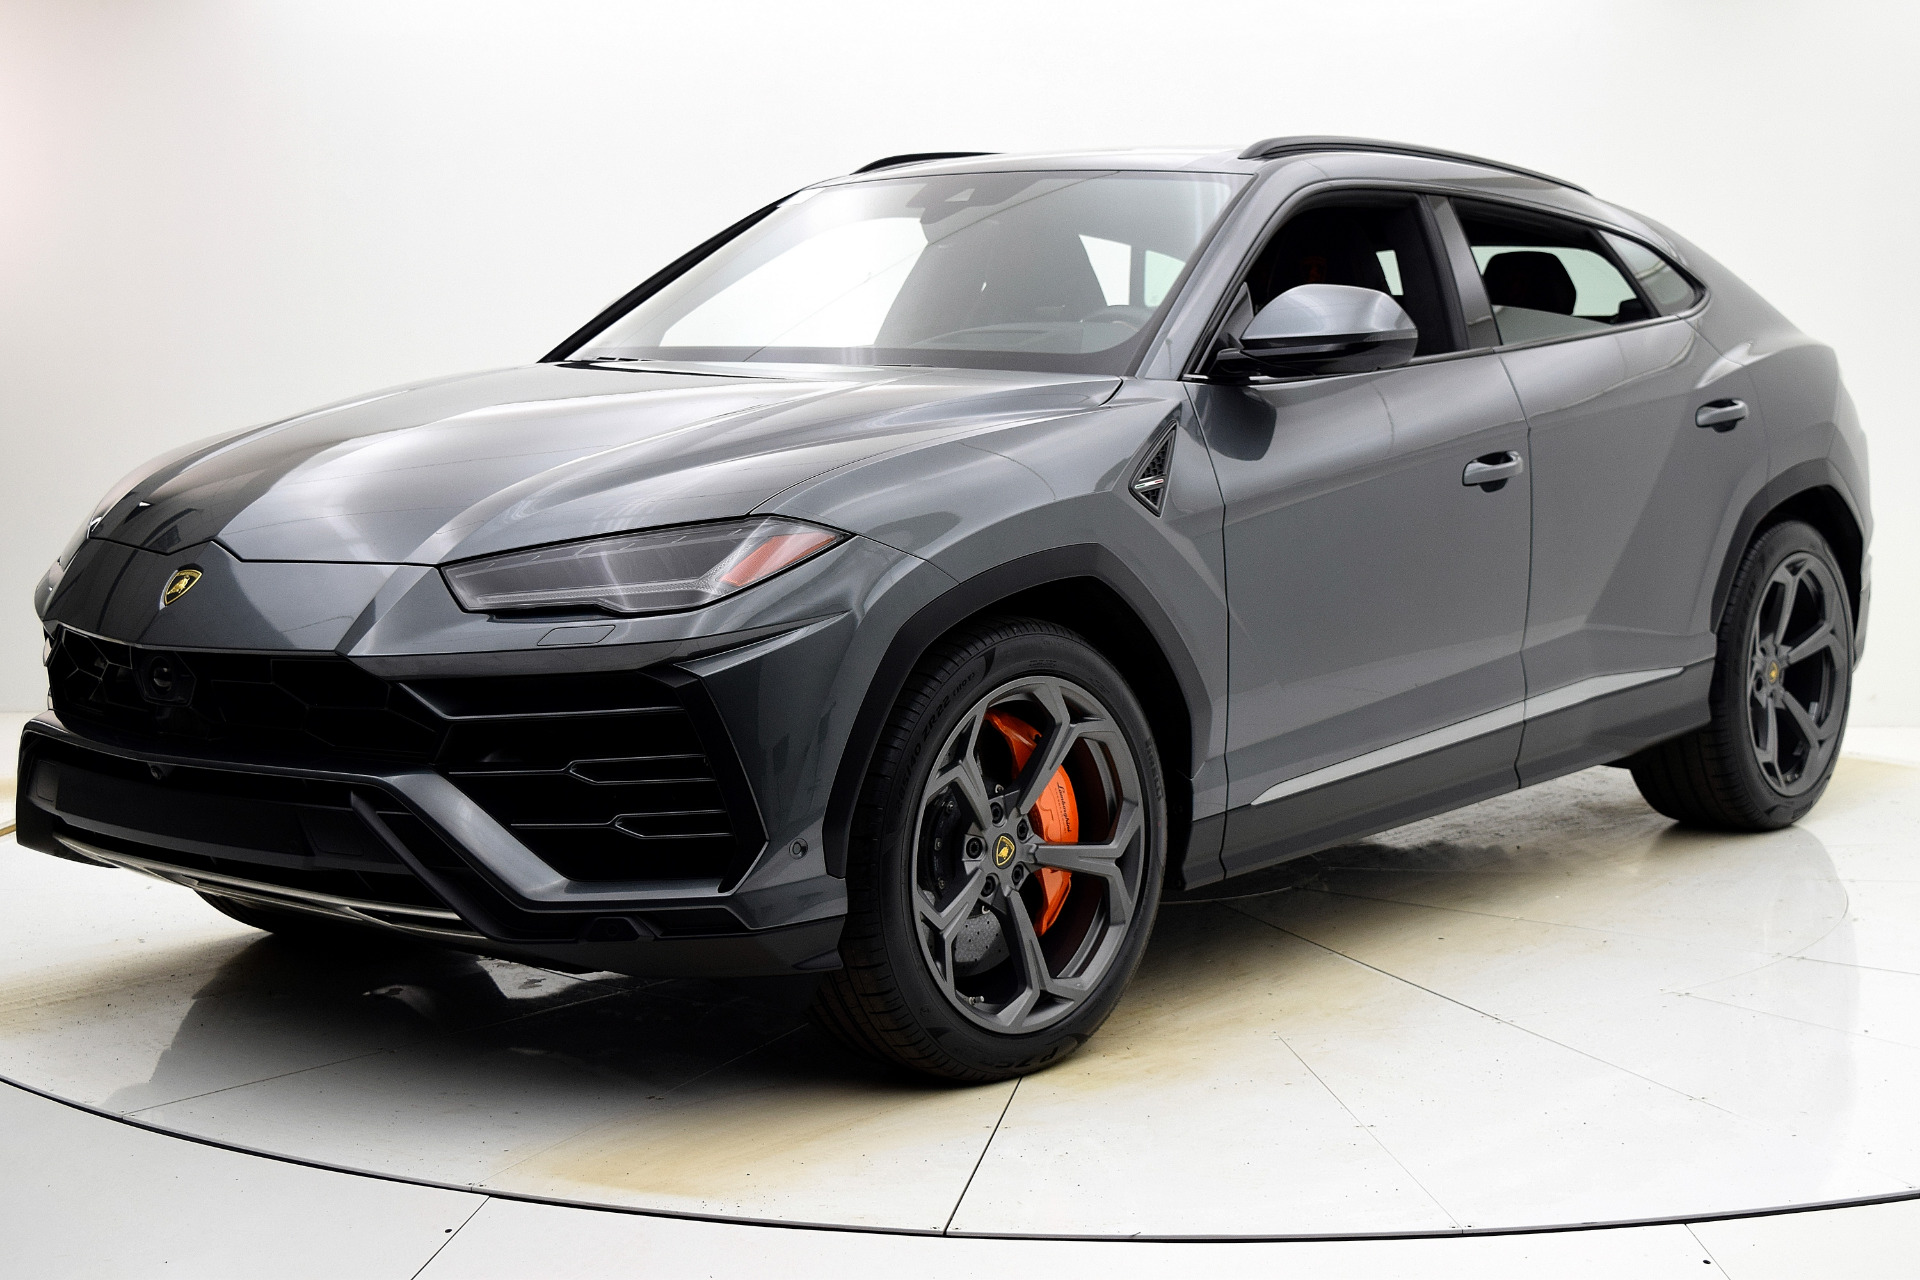 Used 2020 Lamborghini Urus for sale $259,880 at Bentley Palmyra N.J. in Palmyra NJ 08065 2